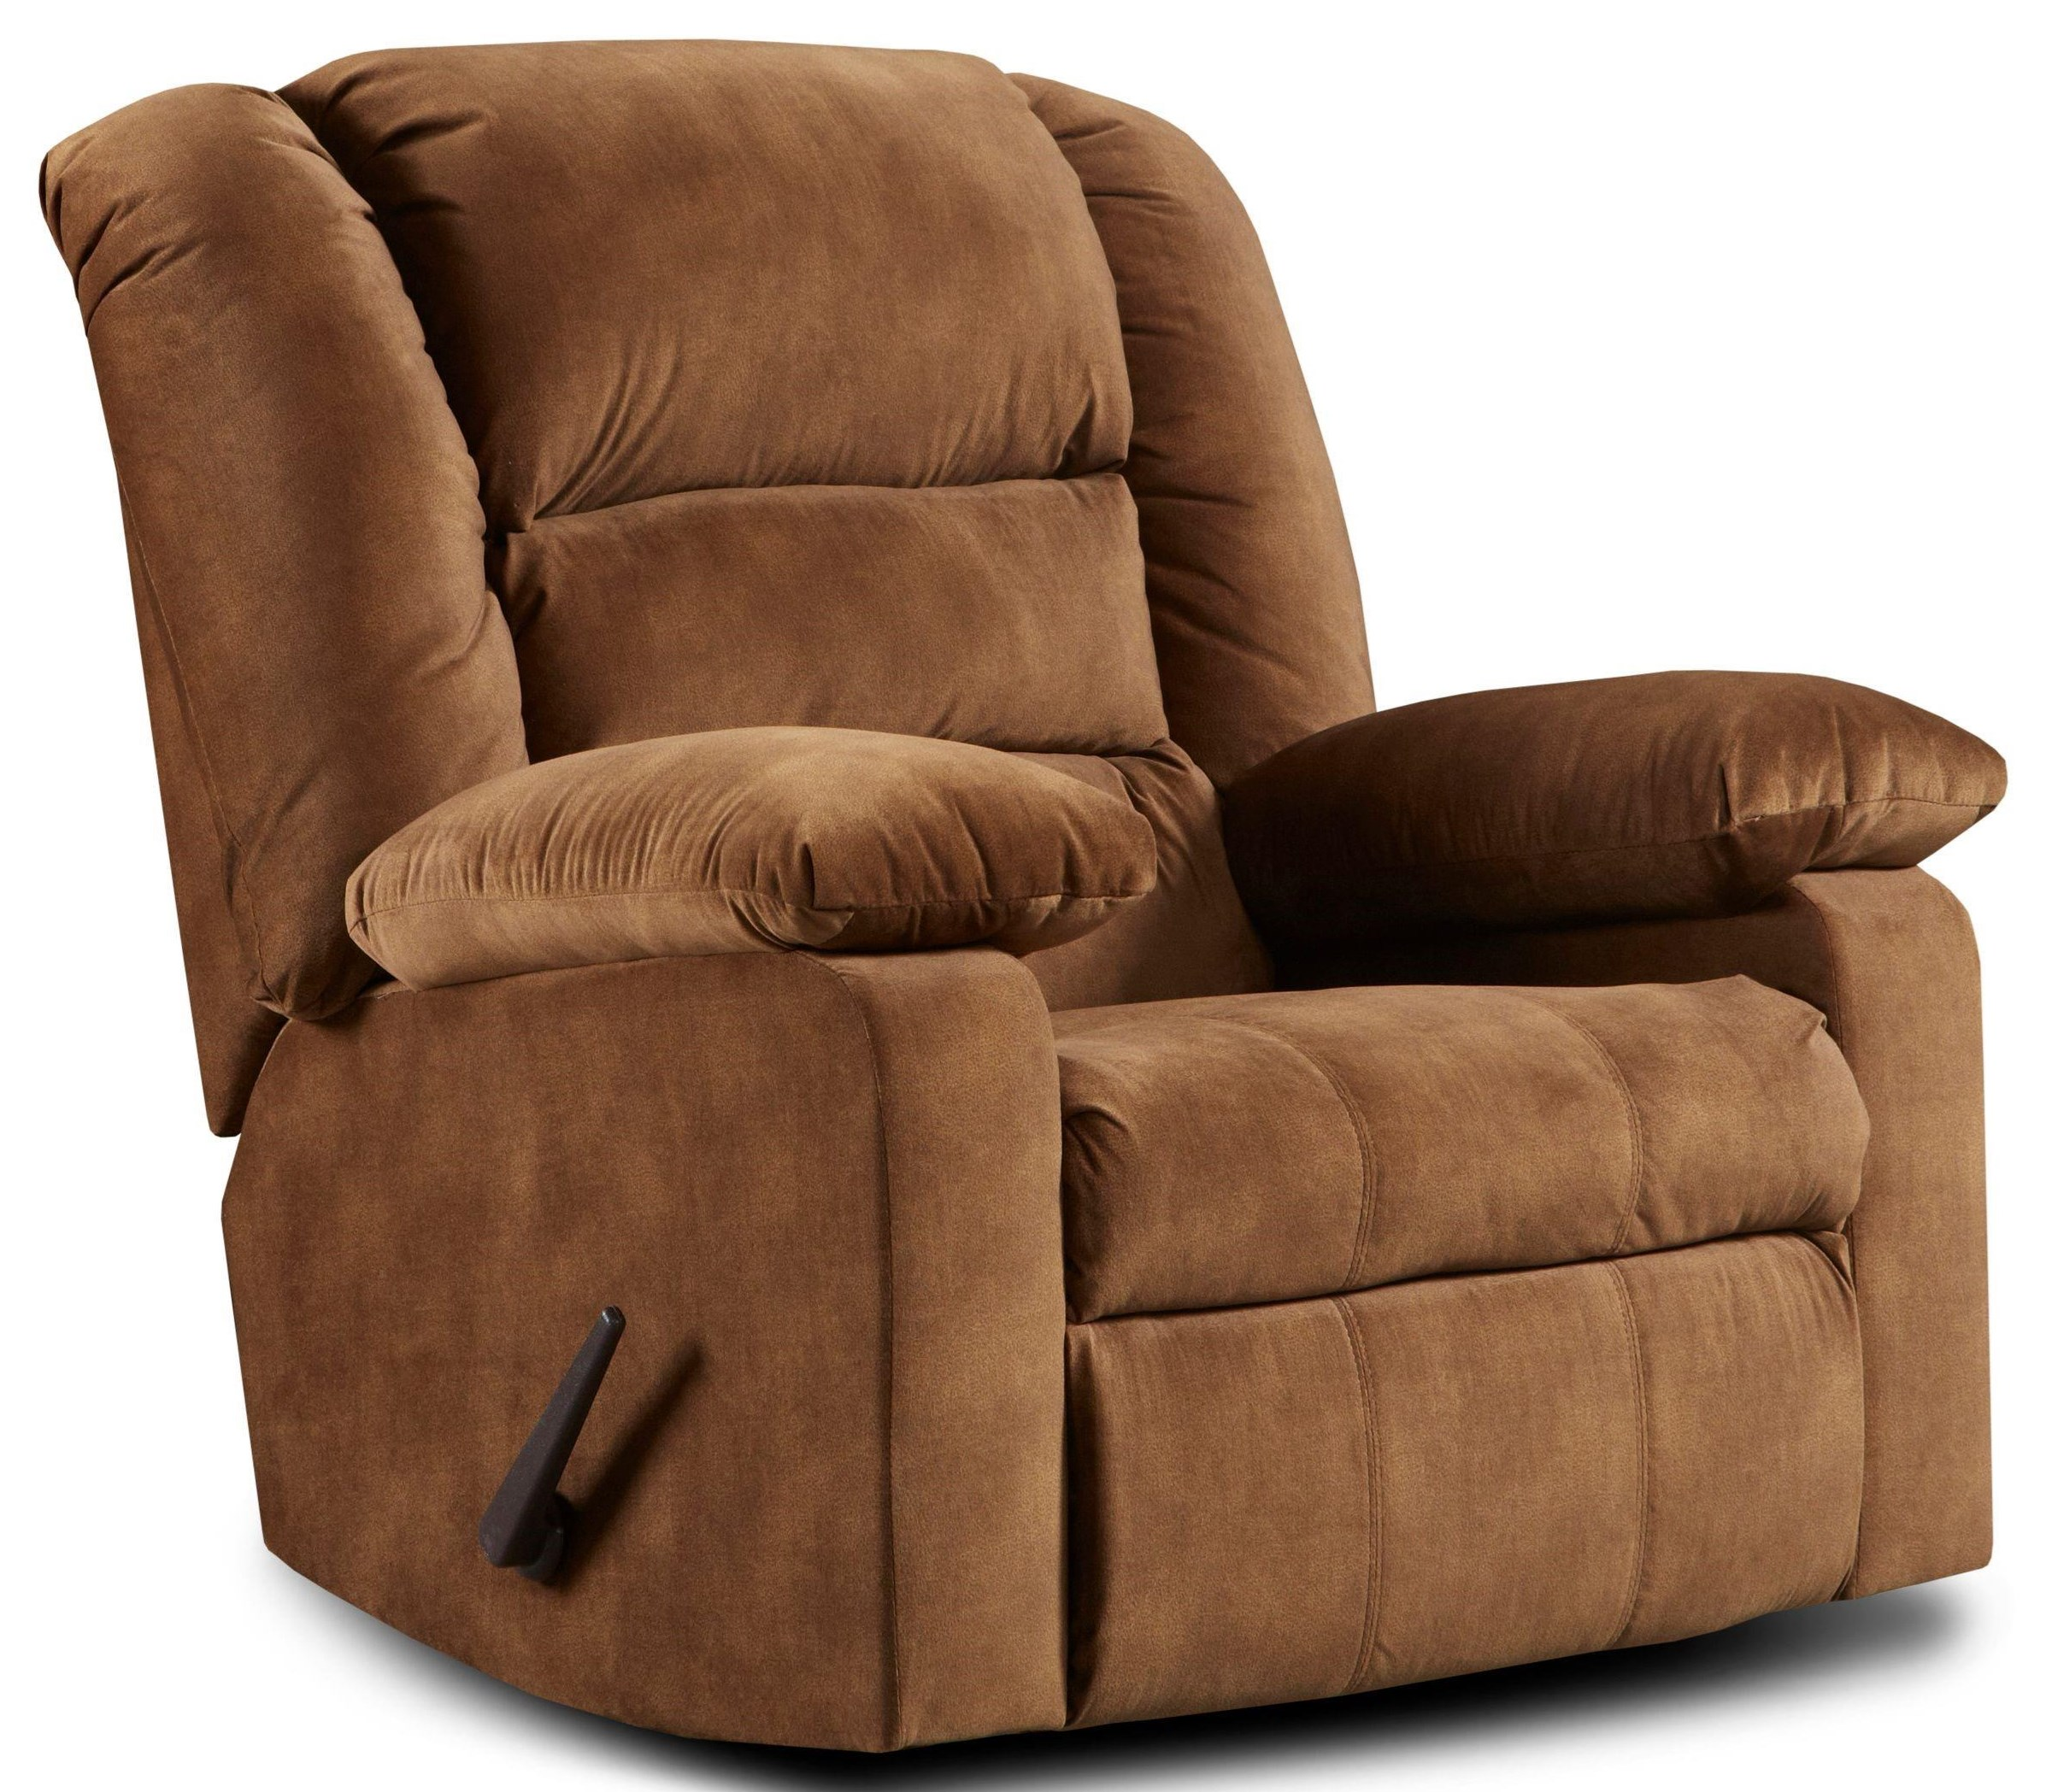 Cody ROCKER RECLINER by Behold Home at Standard Furniture